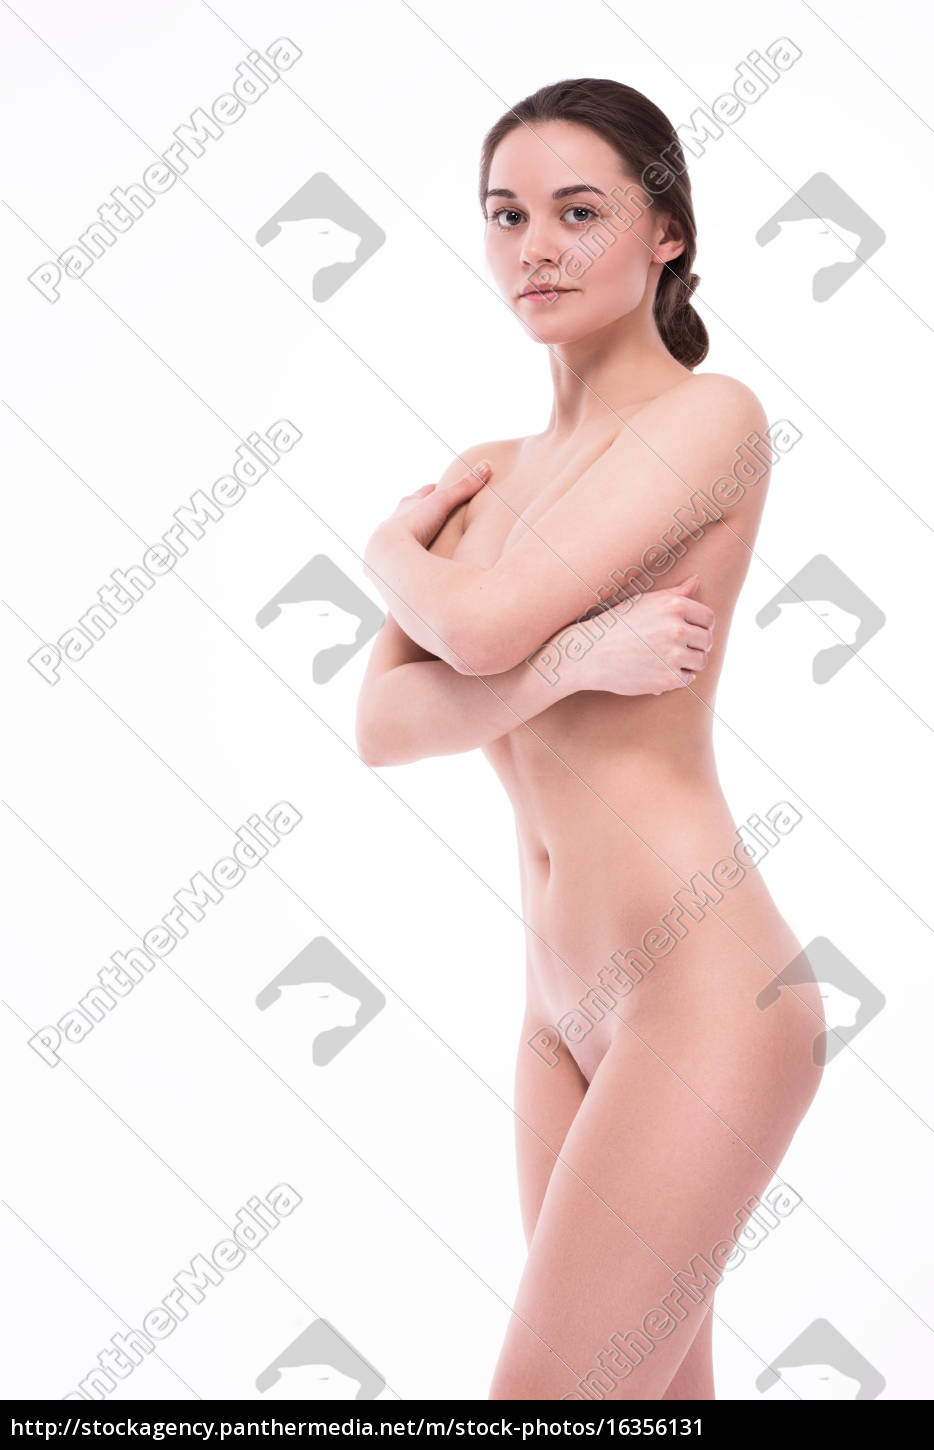 nude, with, a, smile, looking, at - 16356131